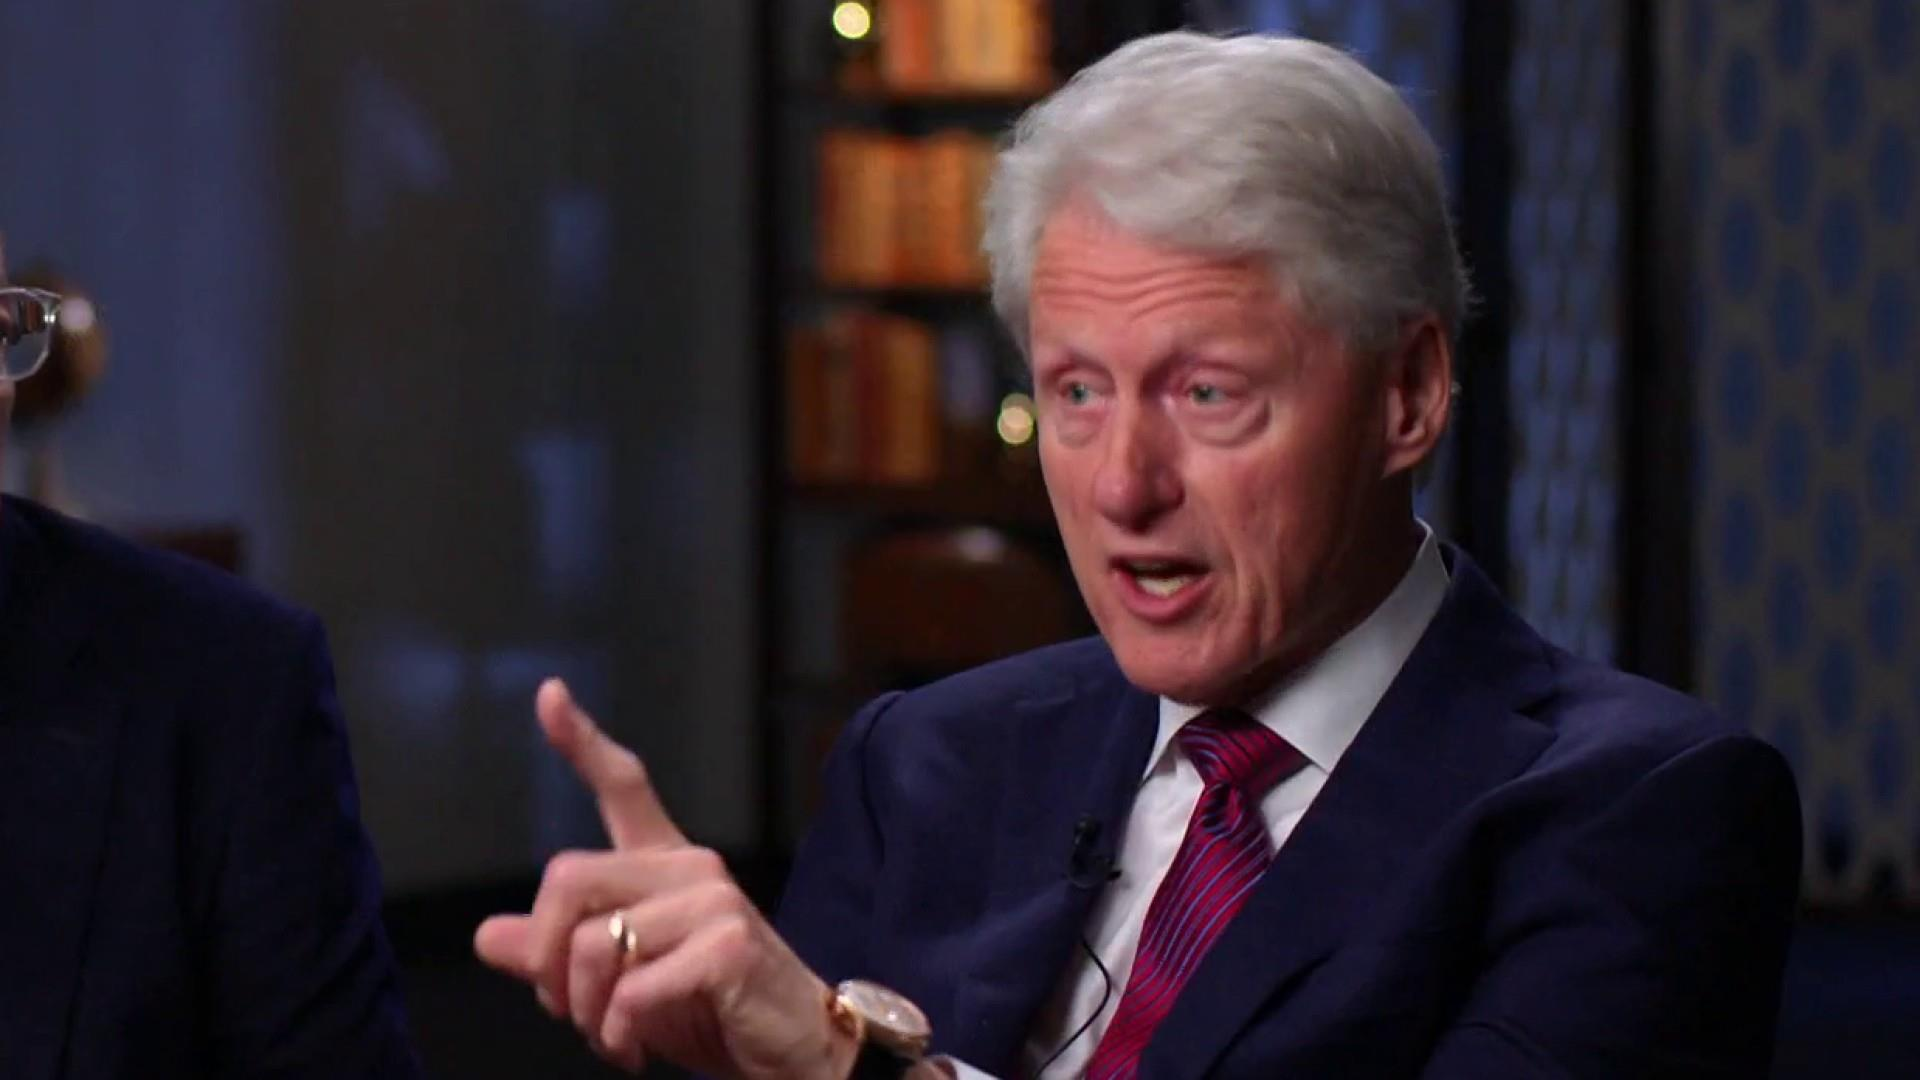 Does Bill Clinton need to evolve in the #MeToo era?